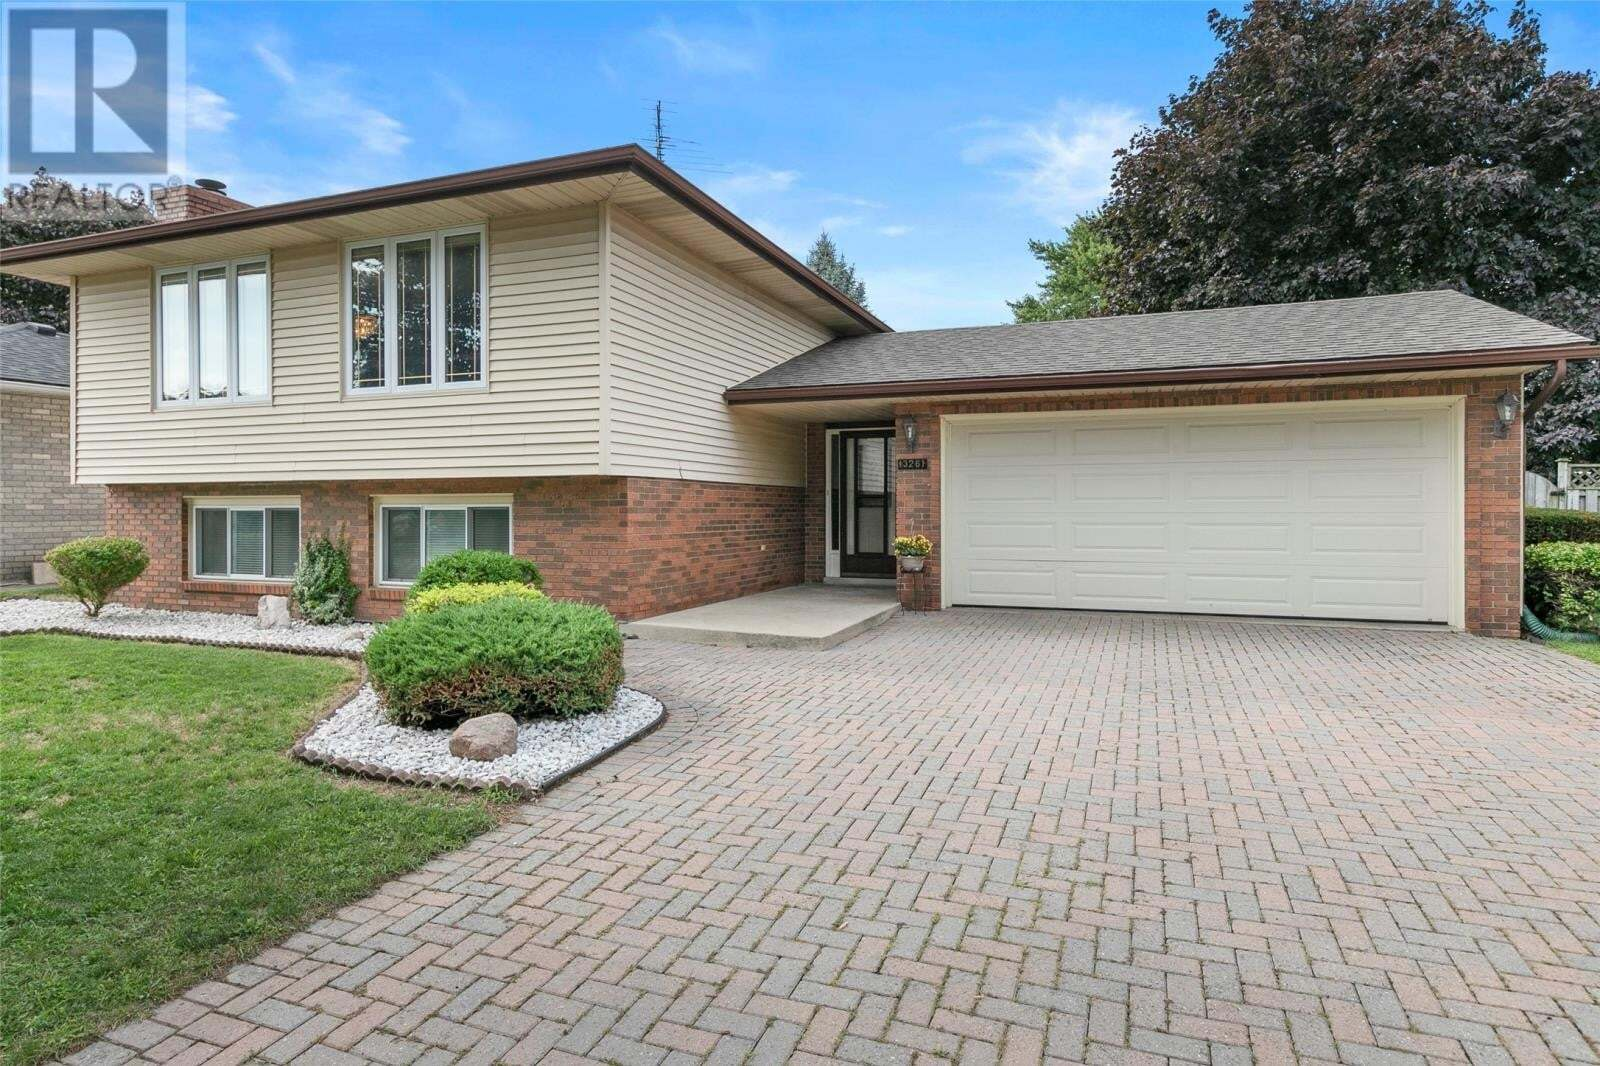 House for sale at 13261 St. Gregory's  Tecumseh Ontario - MLS: 20009741